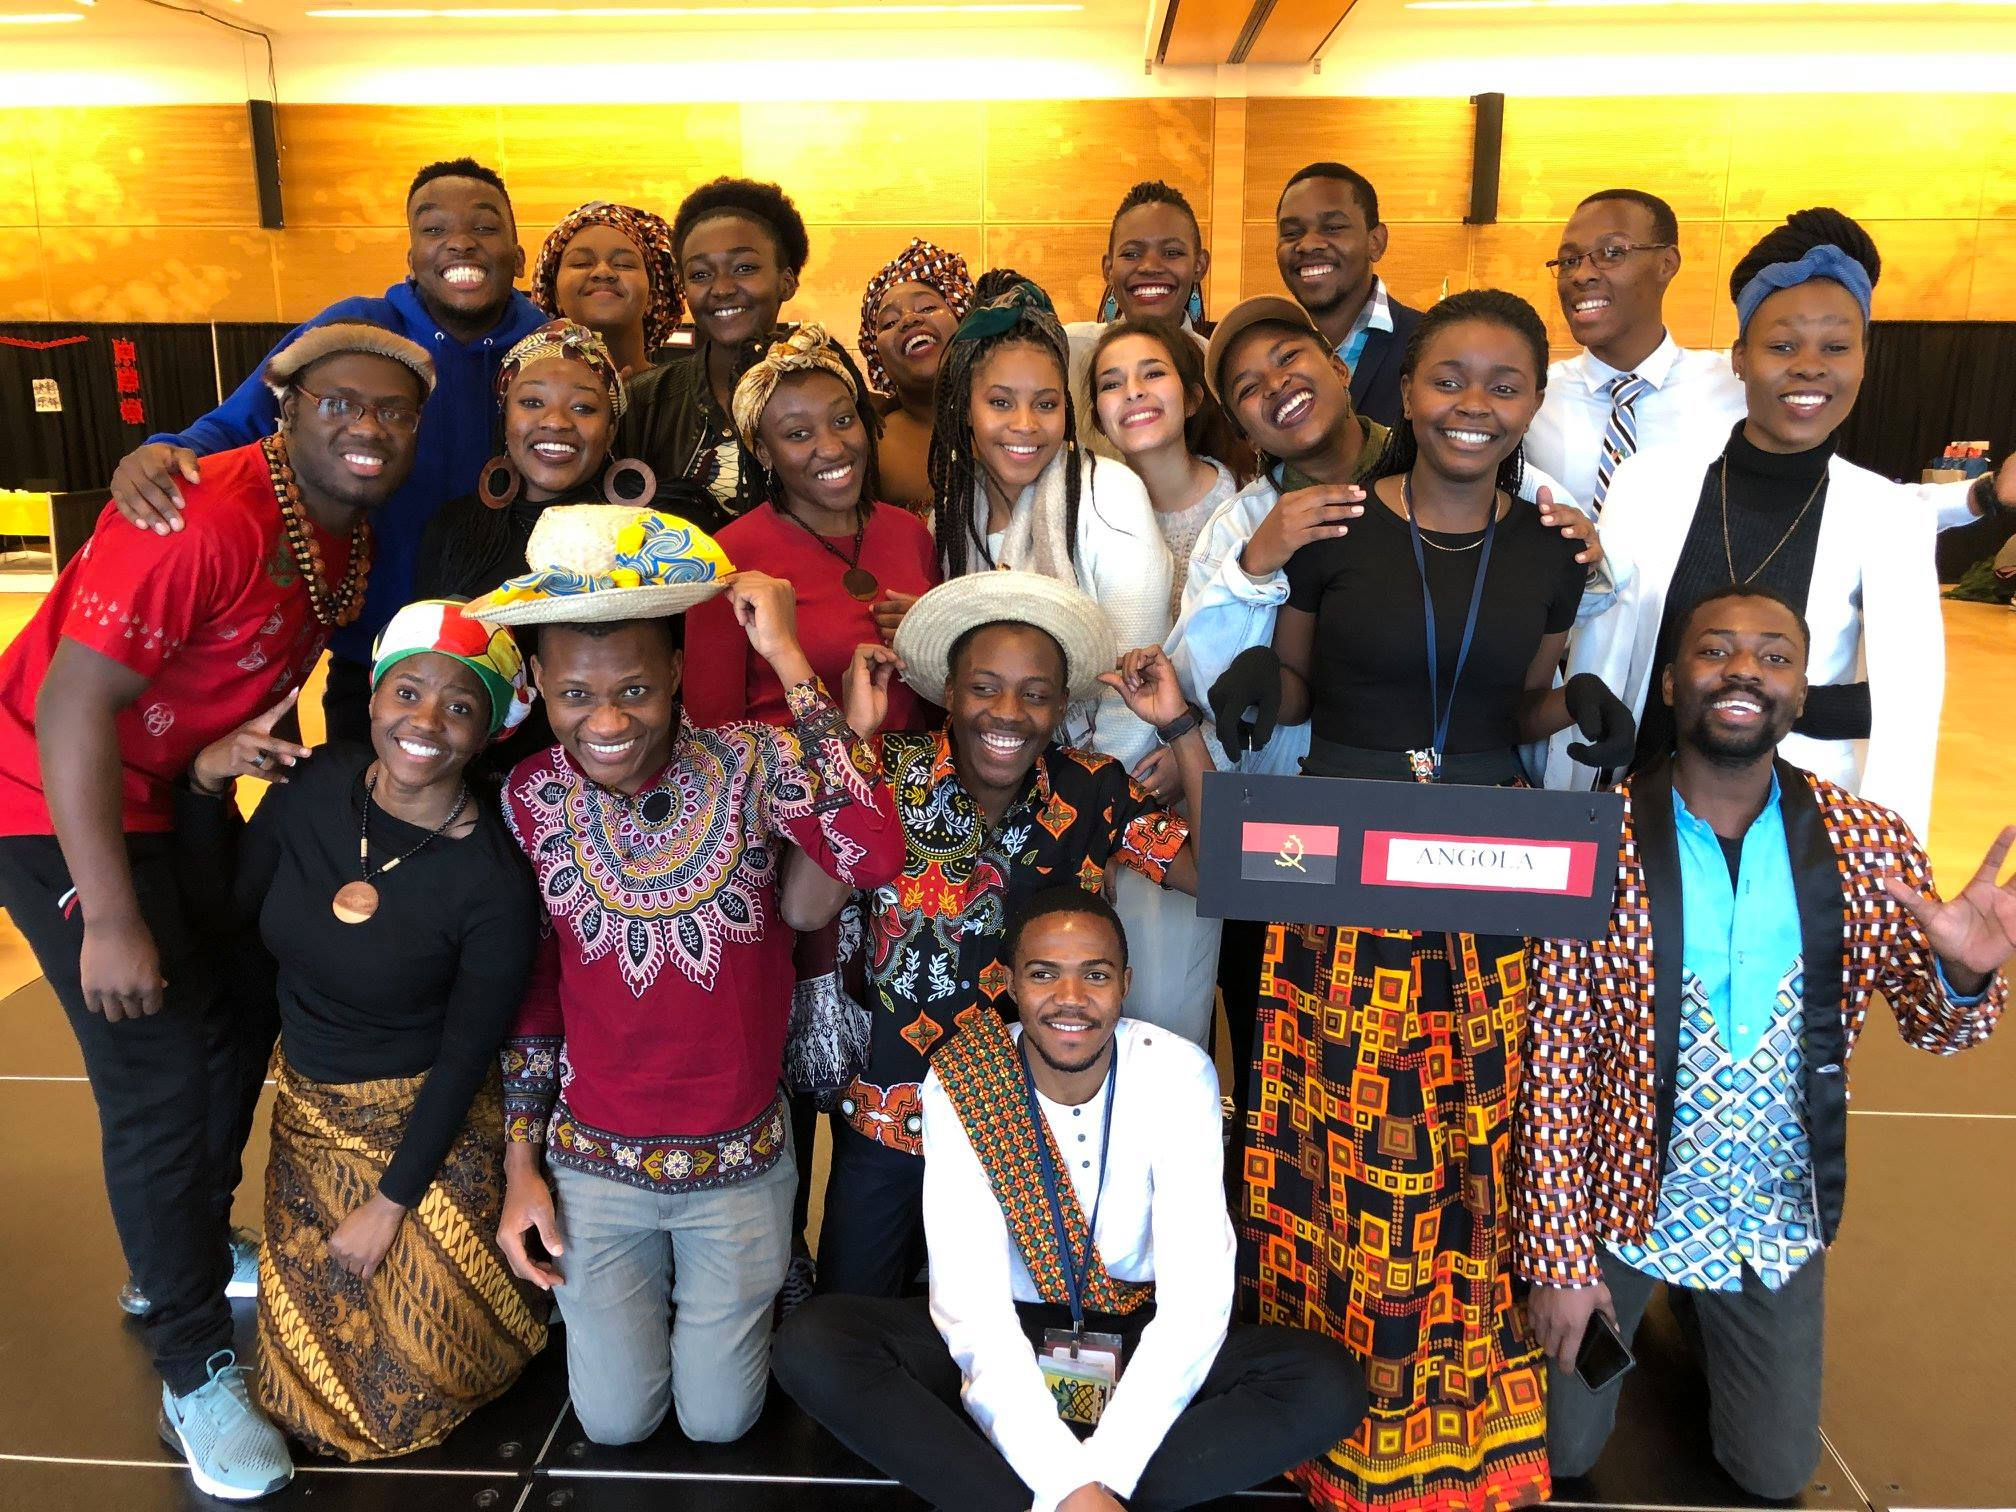 Participants in the 2019 SUSI on Civic Engagement with Southern Africa at the    FIUTS CulturalFest International Expo    in February